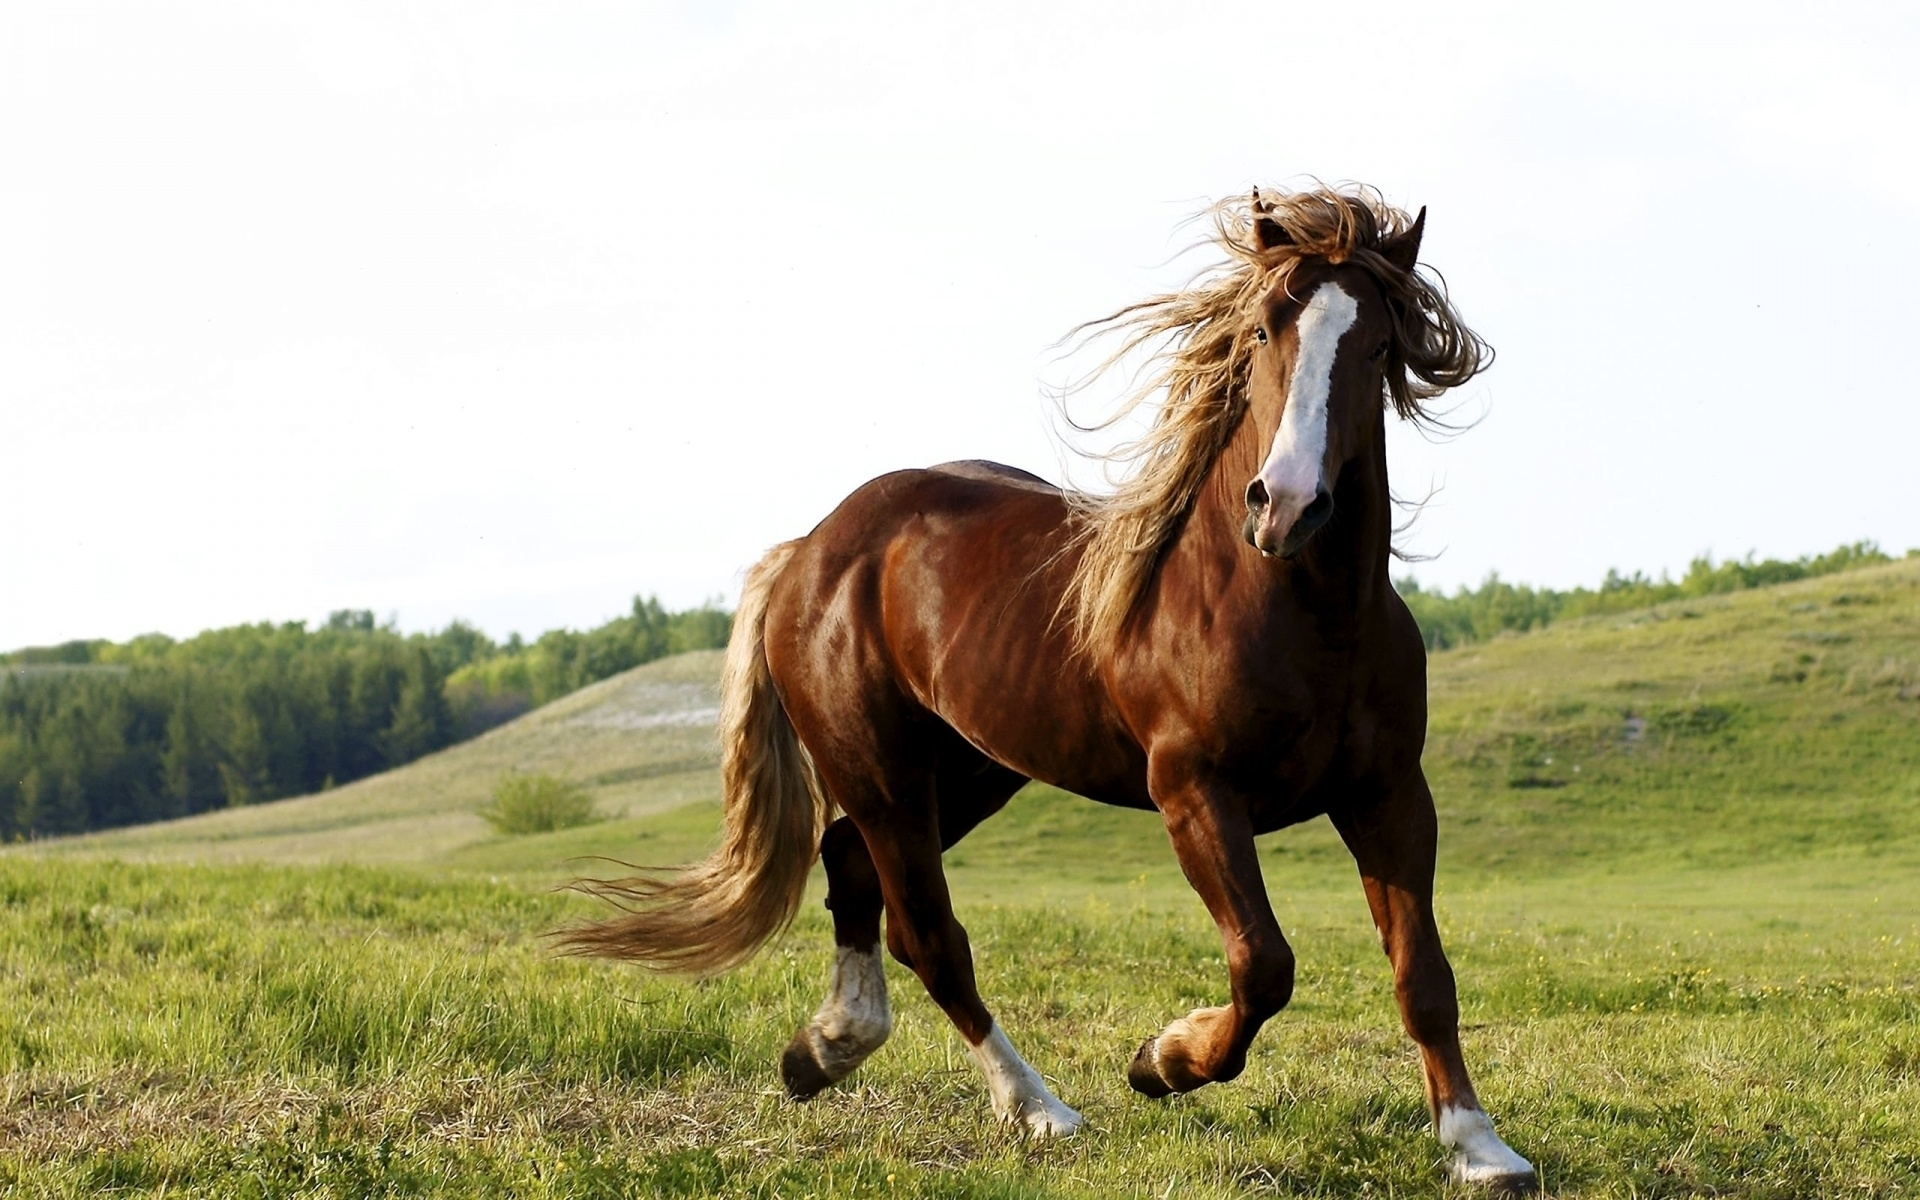 Horse Wallpapers For Iphone